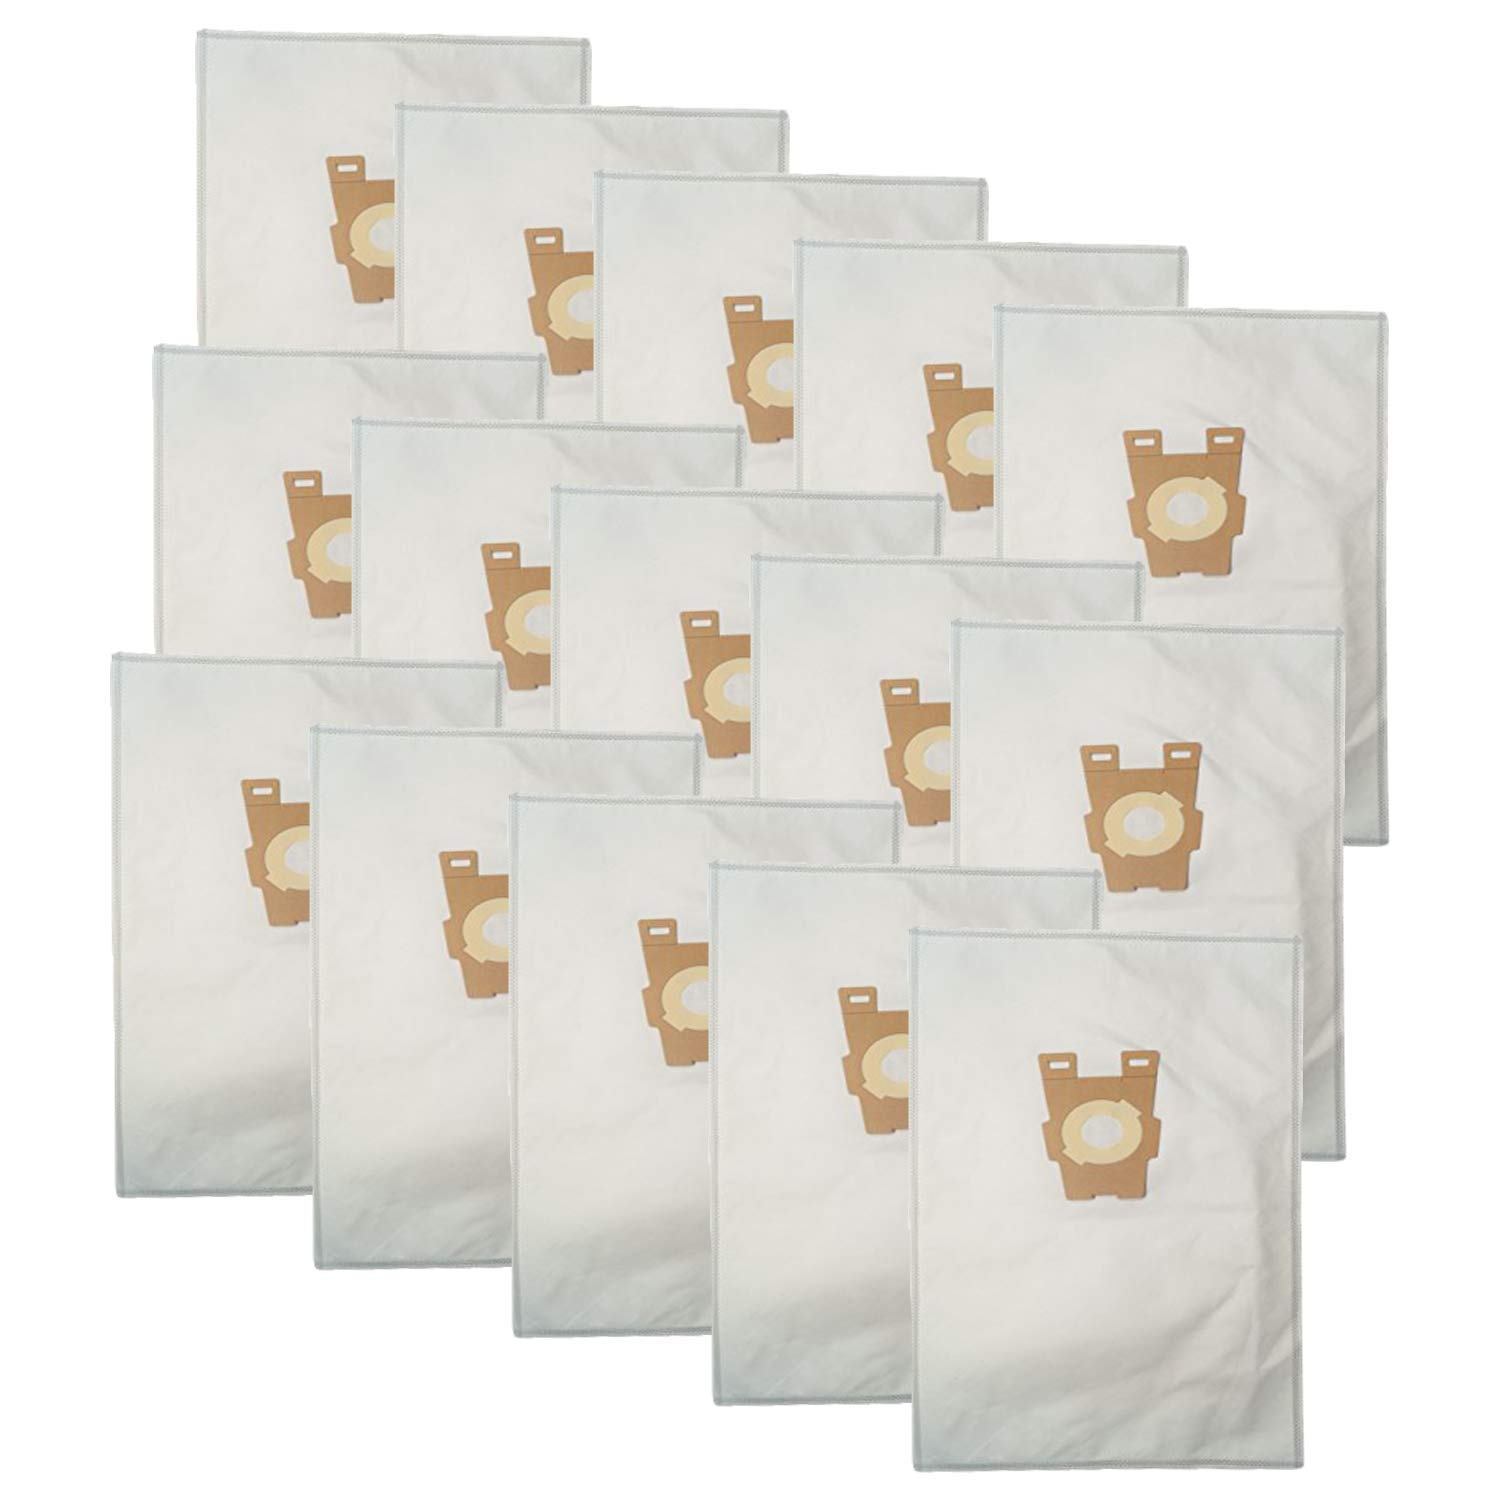 ZVac 15Pk Compatible Cloth Vacuum Bags Replacement for Kirby Vacuum Bags Style F. Fits All Ultimate G Diamond Edition, Ultimate G Series, Gsix, Sentria (Year 2009+). Replaces Part# 204808, 204808GW by ZVac